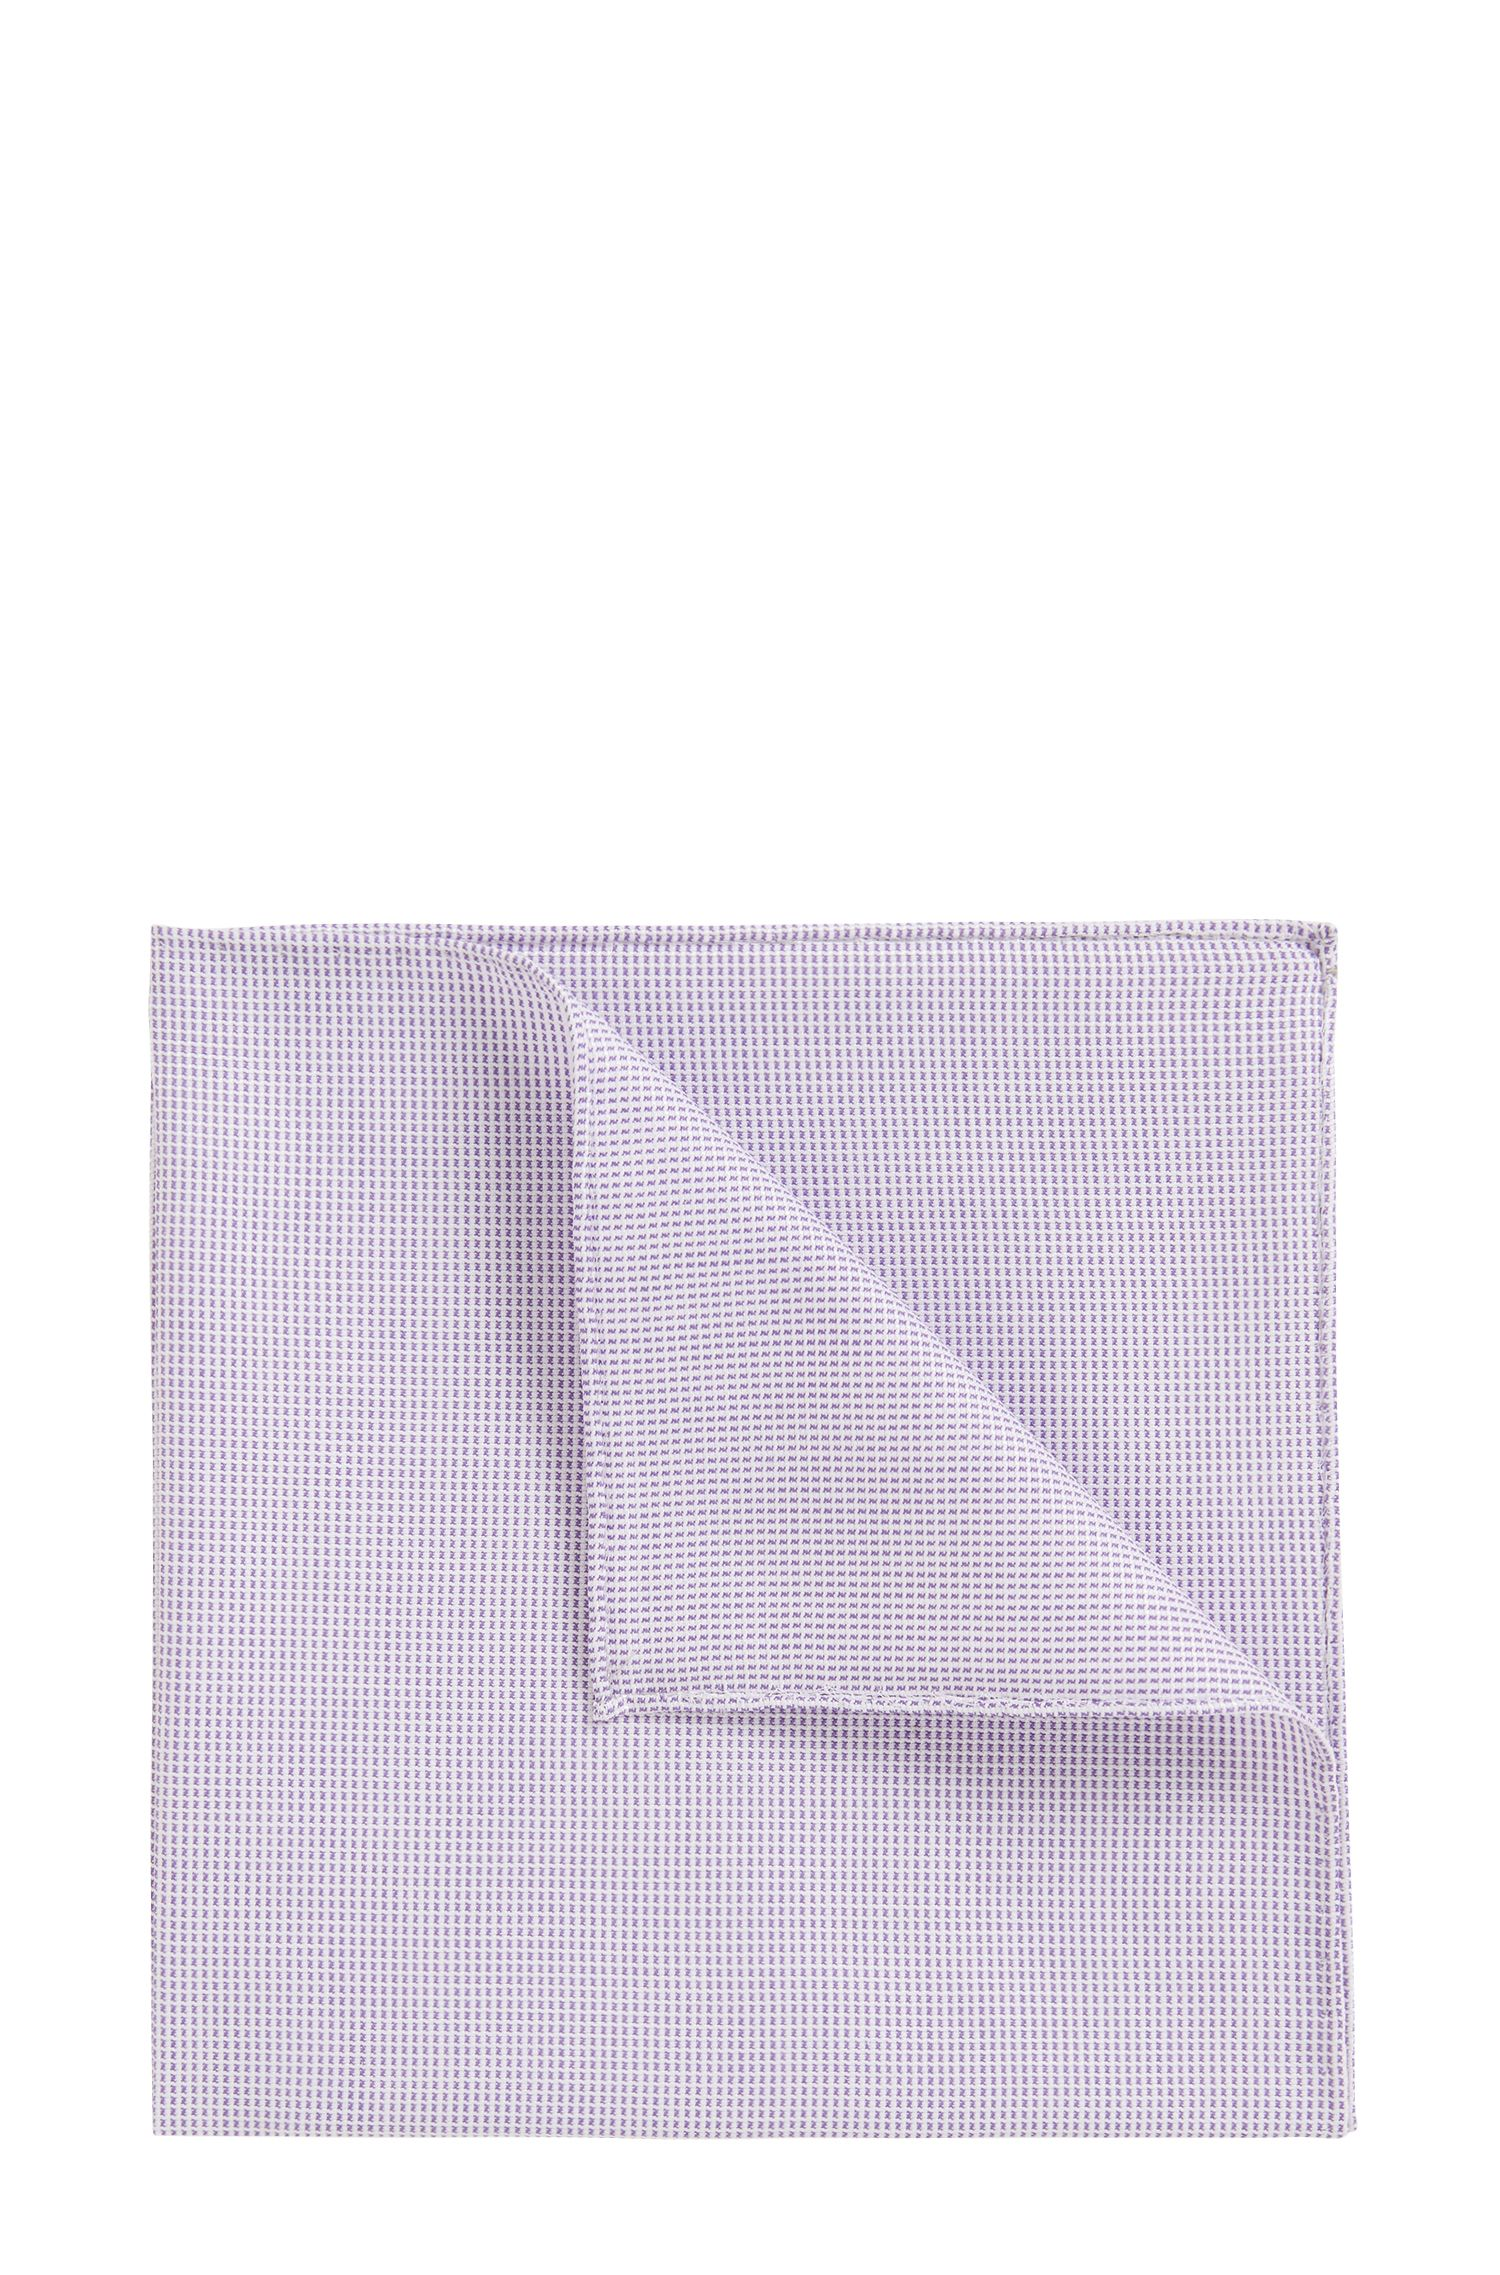 Rolled-hem pocket square in cotton-blend jacquard